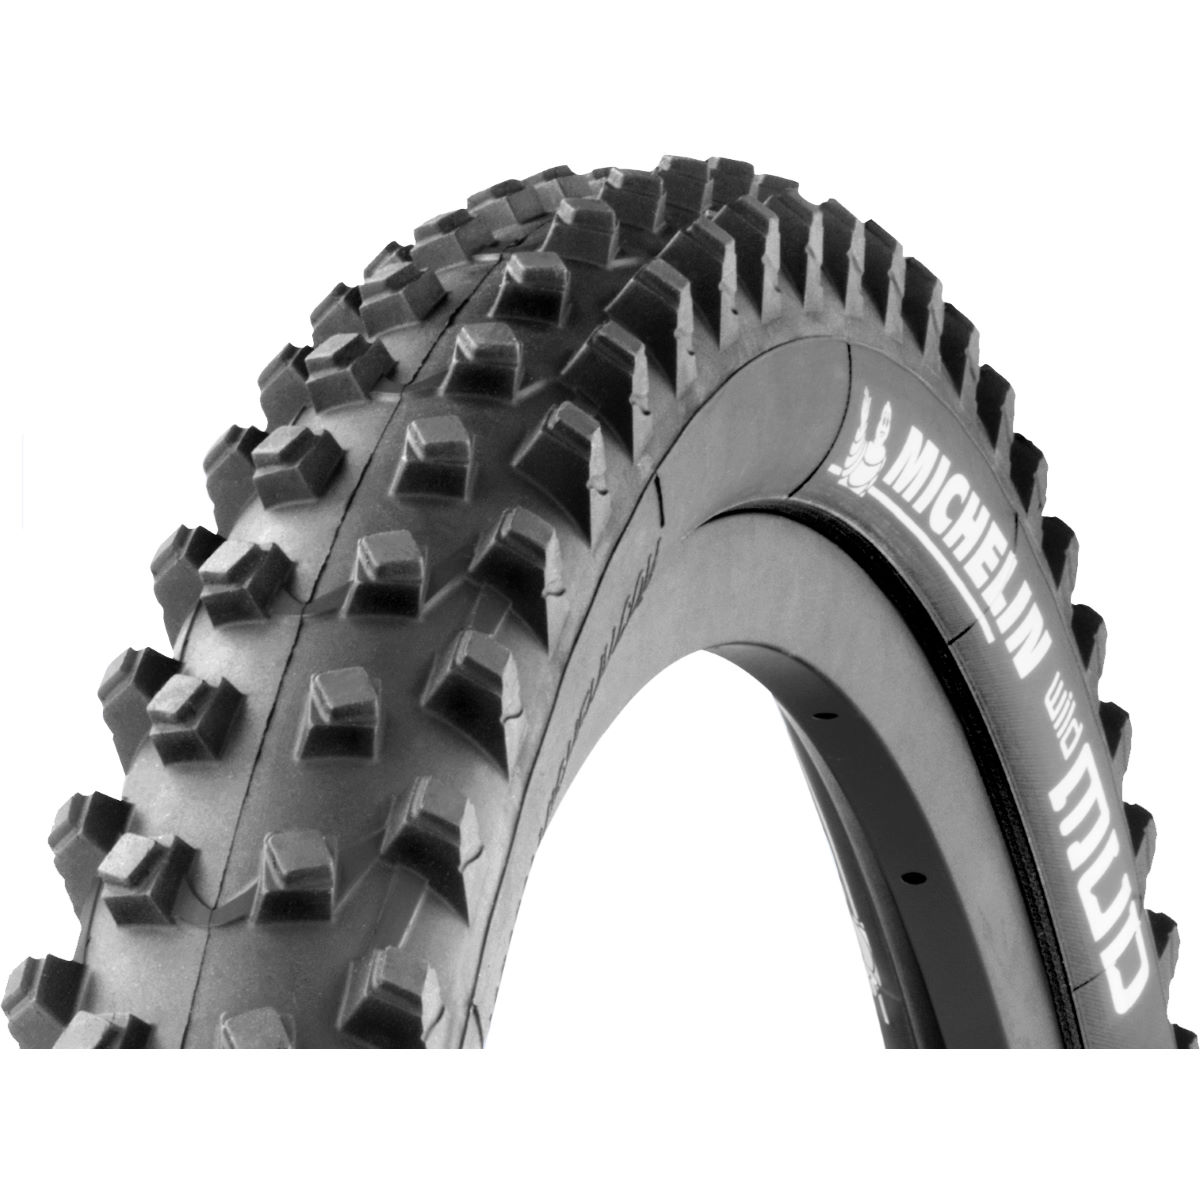 Pneu Michelin Wild Mud Advanced Reinforced 29 pouces (souple) - 29 x 2.25 Noir Pneus VTT